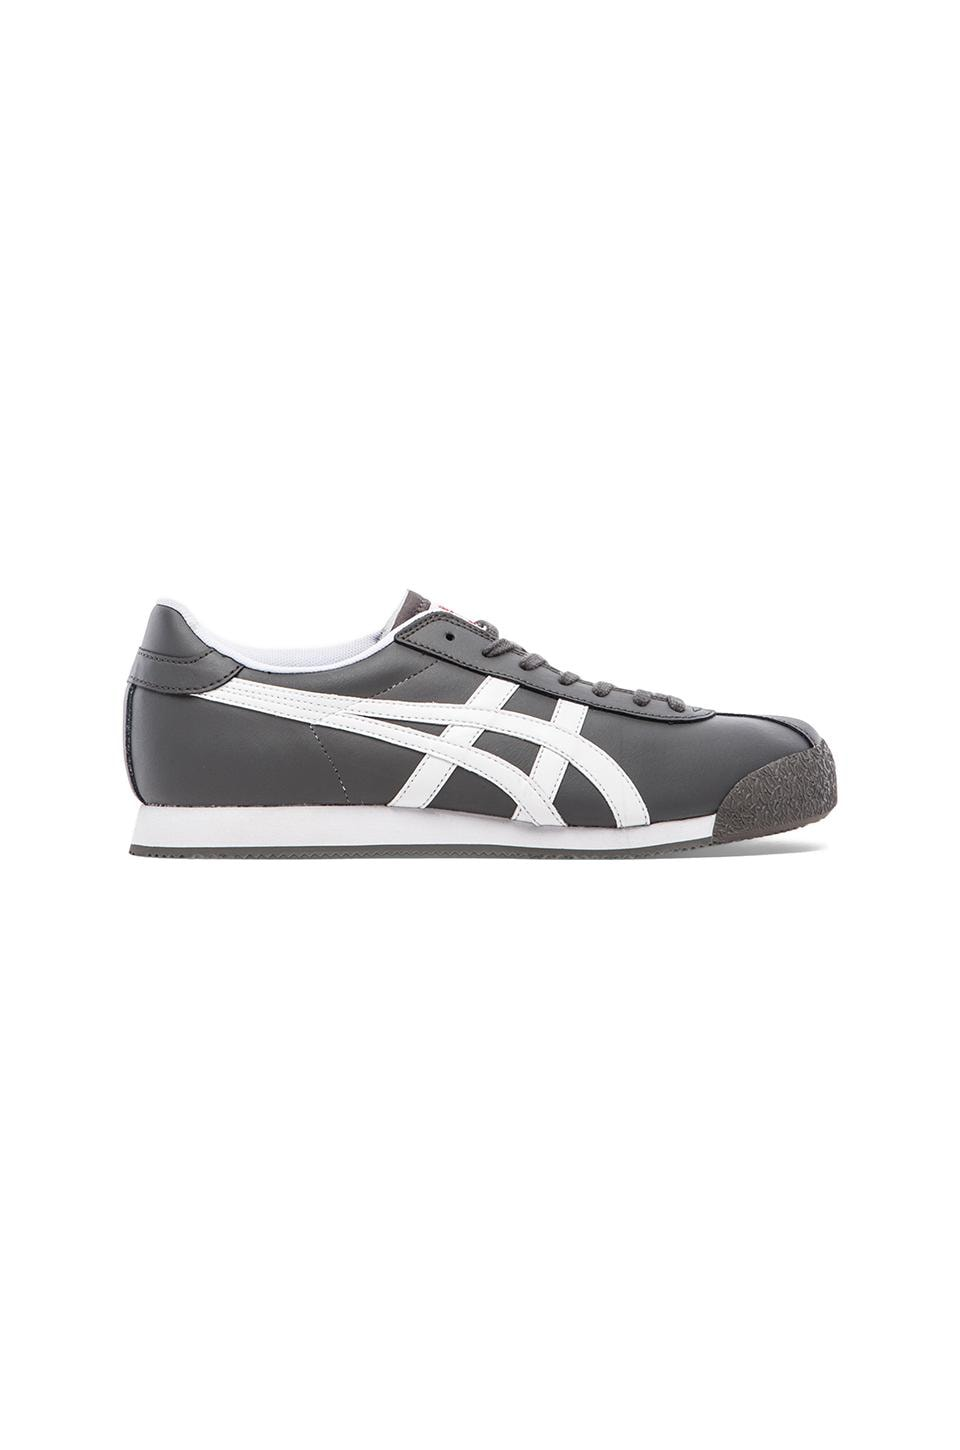 Onitsuka Tiger Pullus in Grey & White